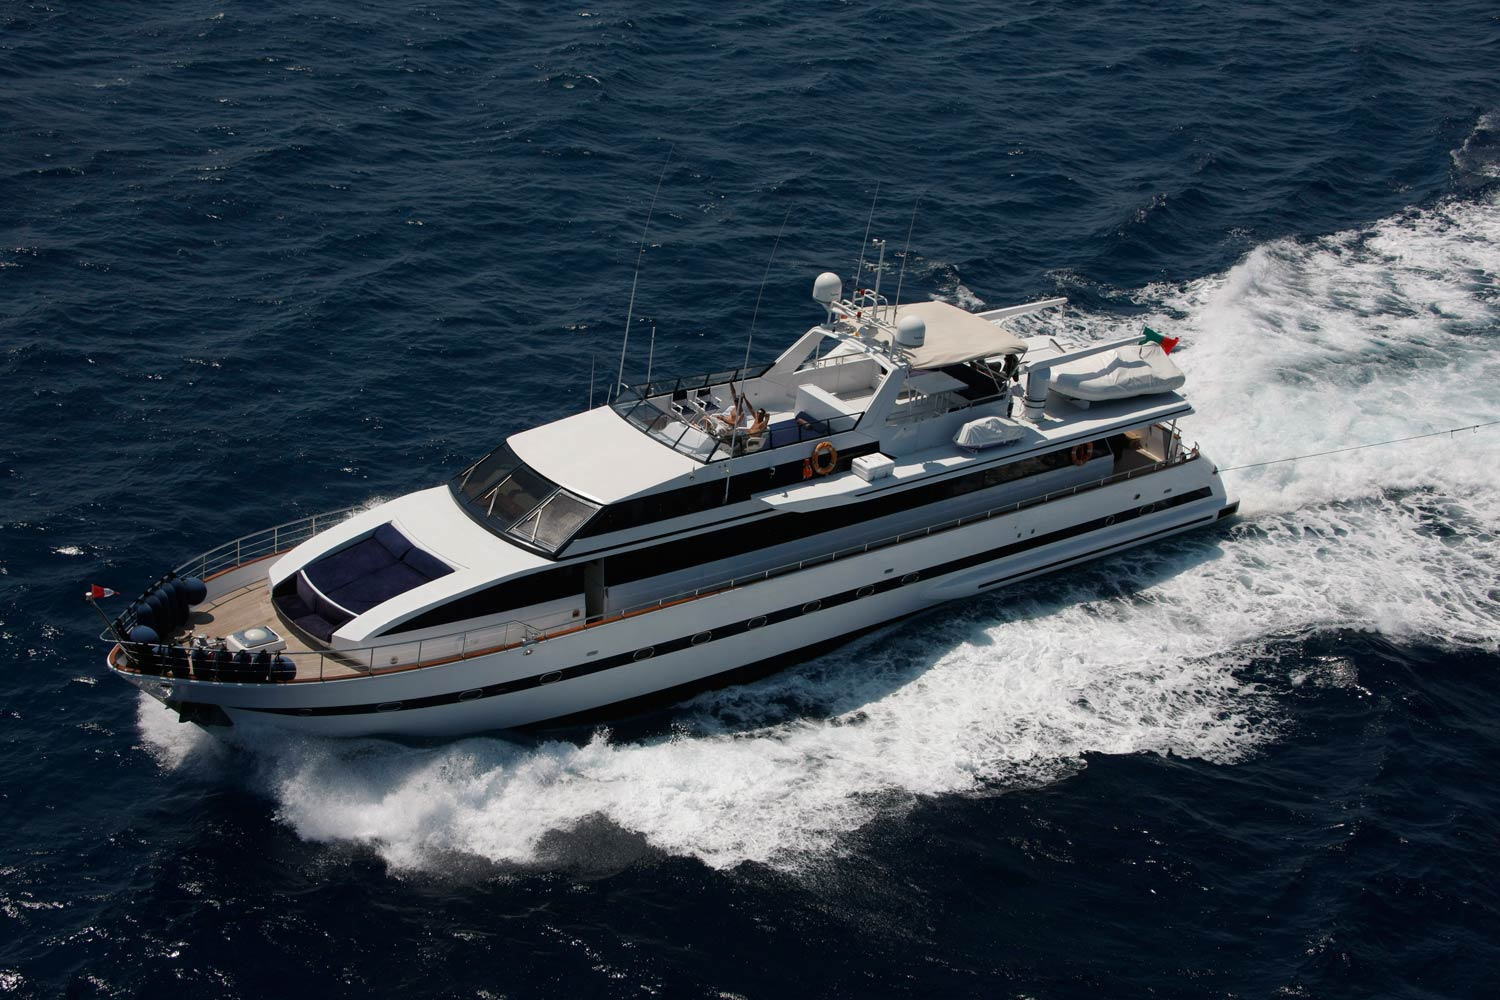 easyboats Introduces Unique 36-Guest Charter Superyacht to Mallorca